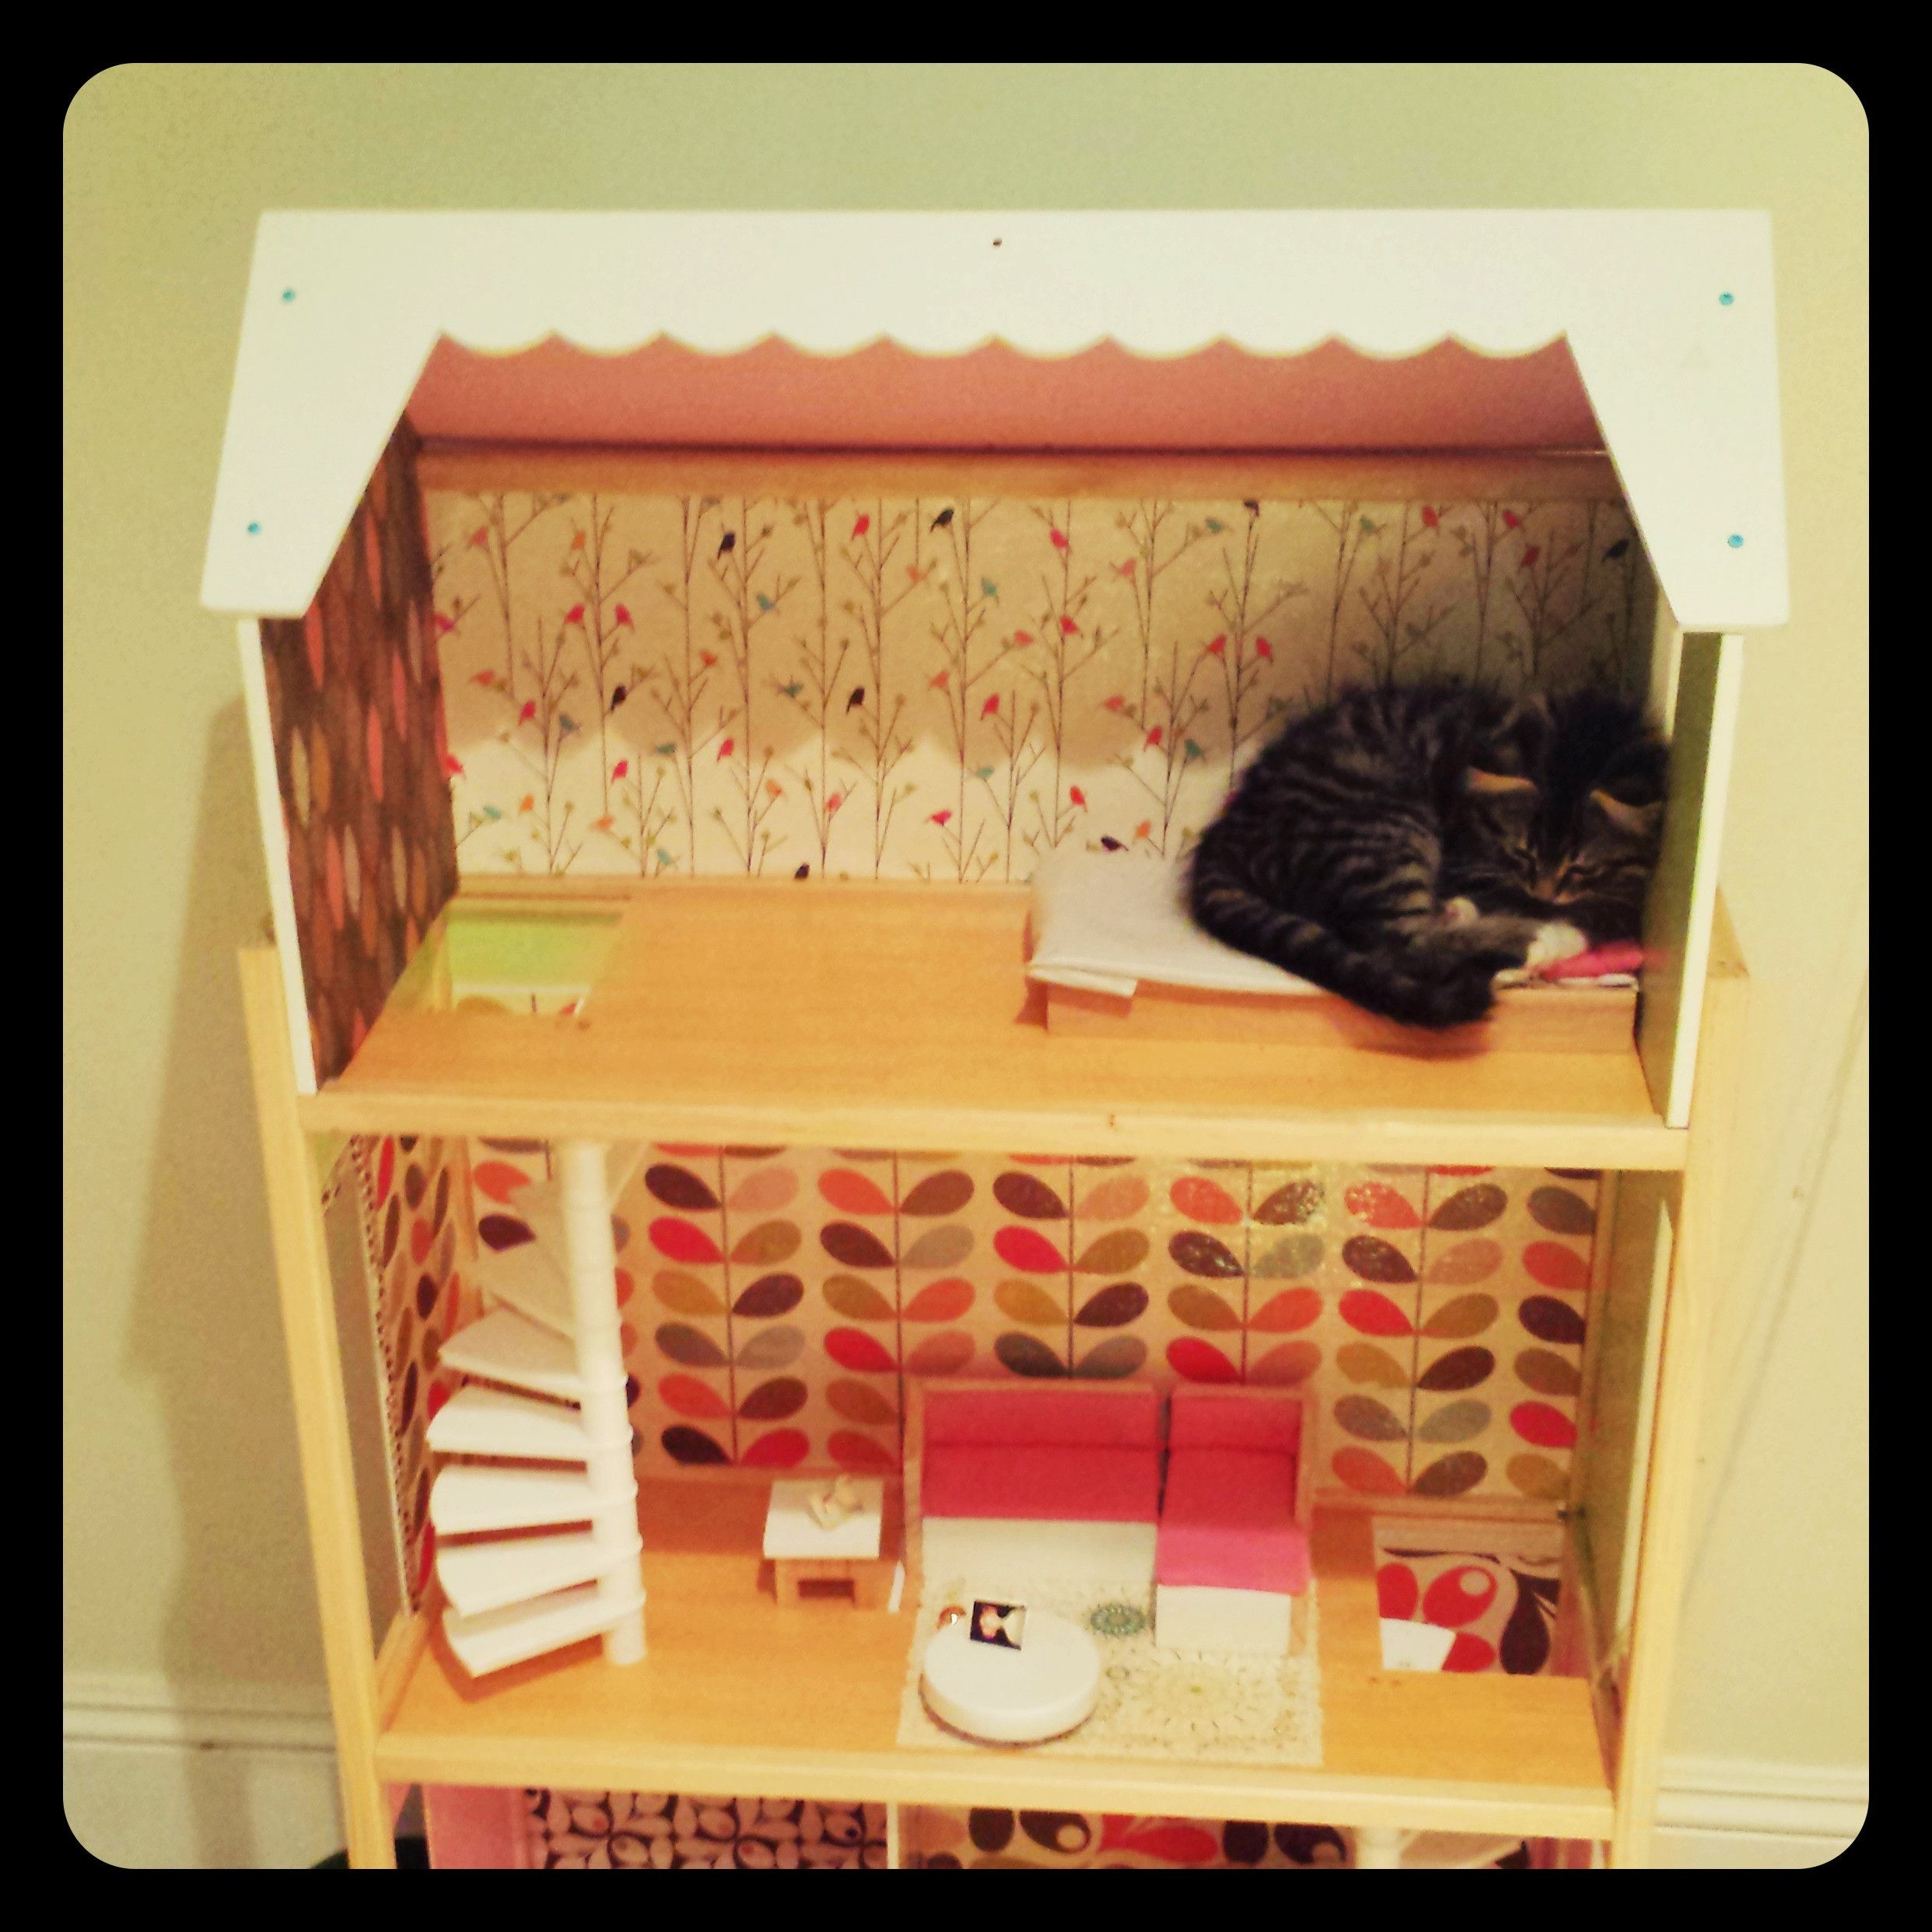 I Made A Dollhouse For My Niece But Huxley The Kitten Has Other Plans For It Doll House Very Cute Dogs Sleeping Kitten